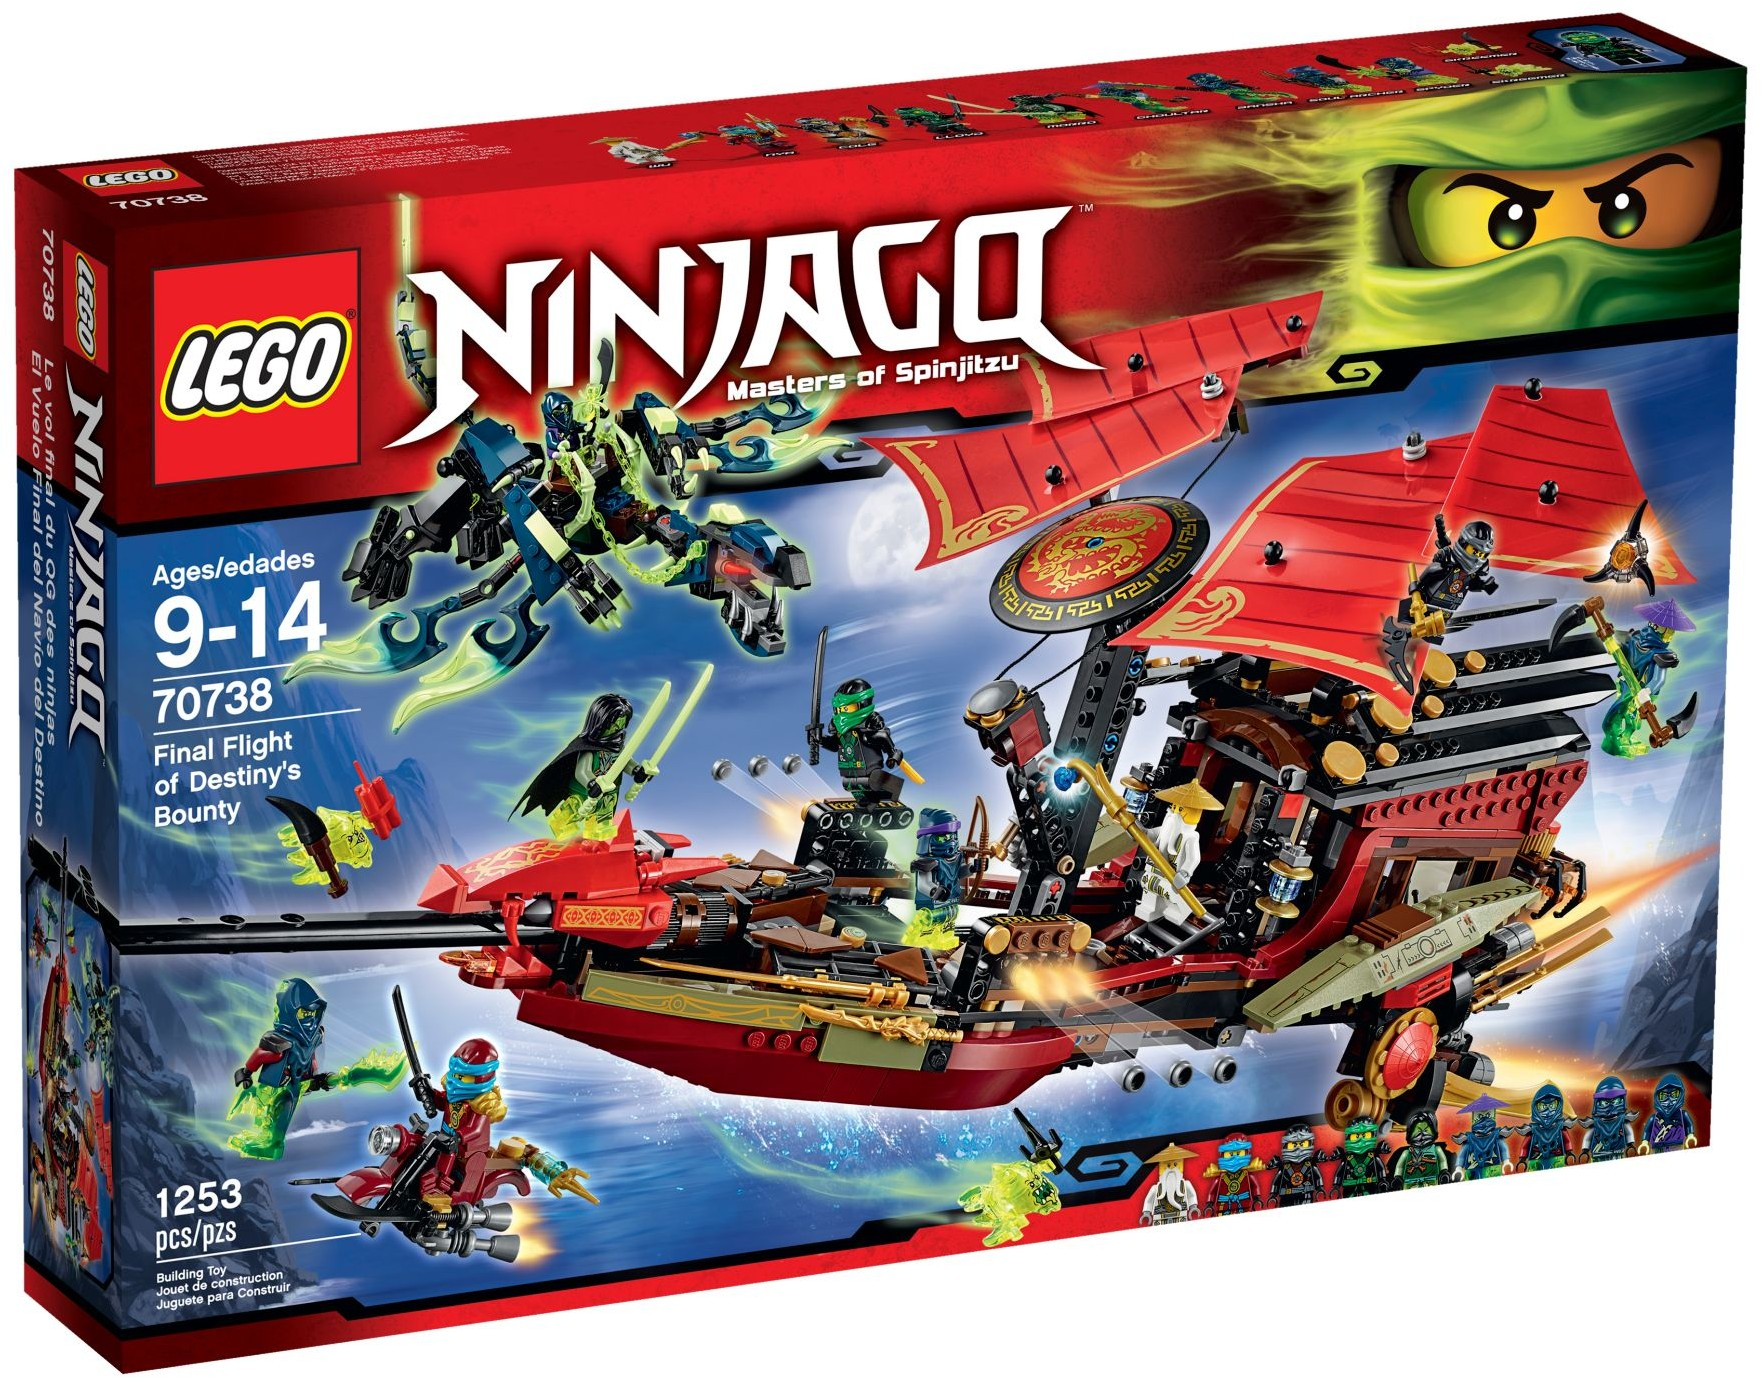 LEGO 70738 - Ninjago - Final Flight of Destiny's Bounty